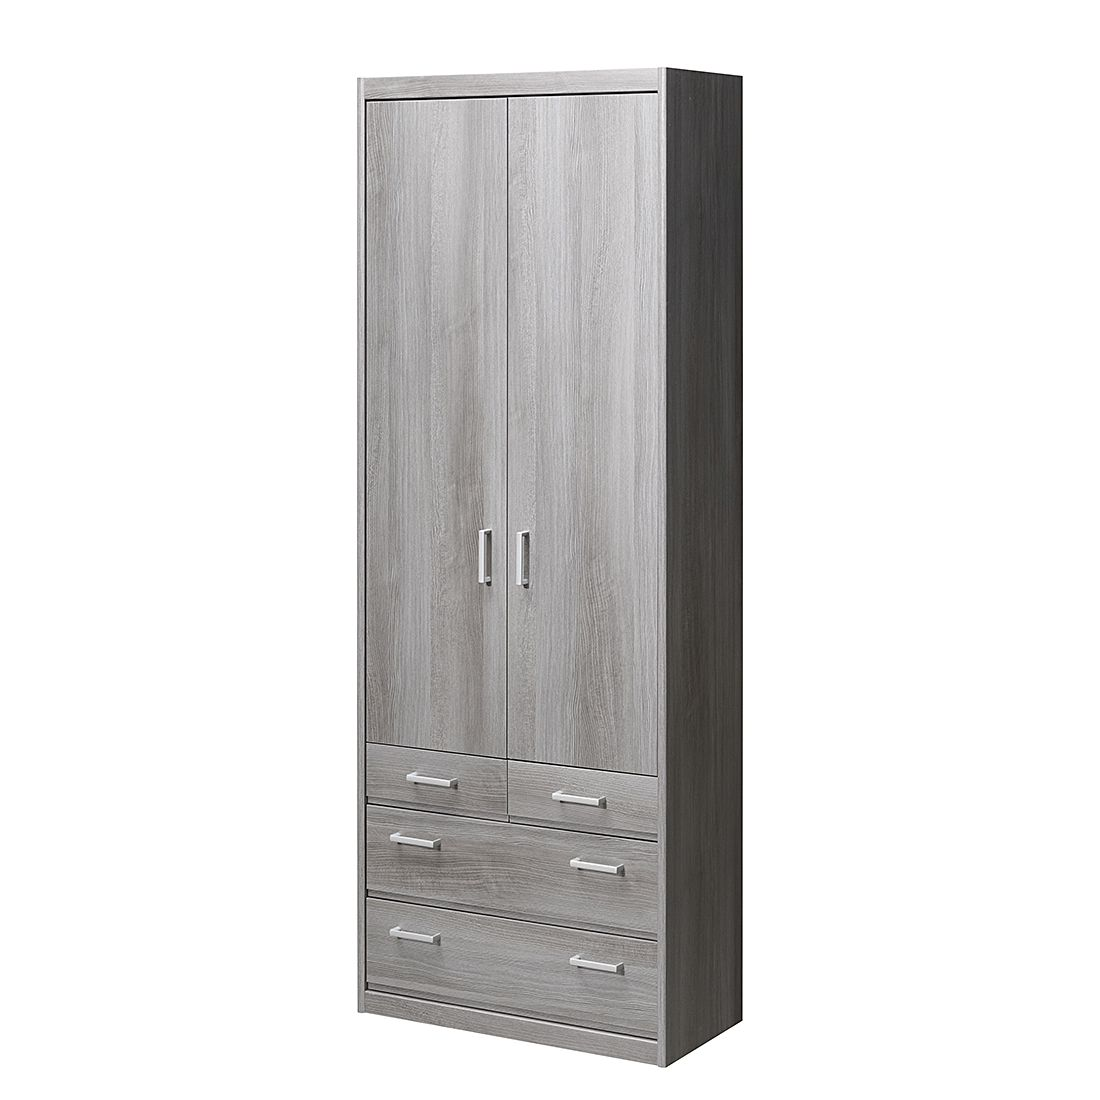 mehrzweckschrank soft plus ii silbereiche dekor. Black Bedroom Furniture Sets. Home Design Ideas